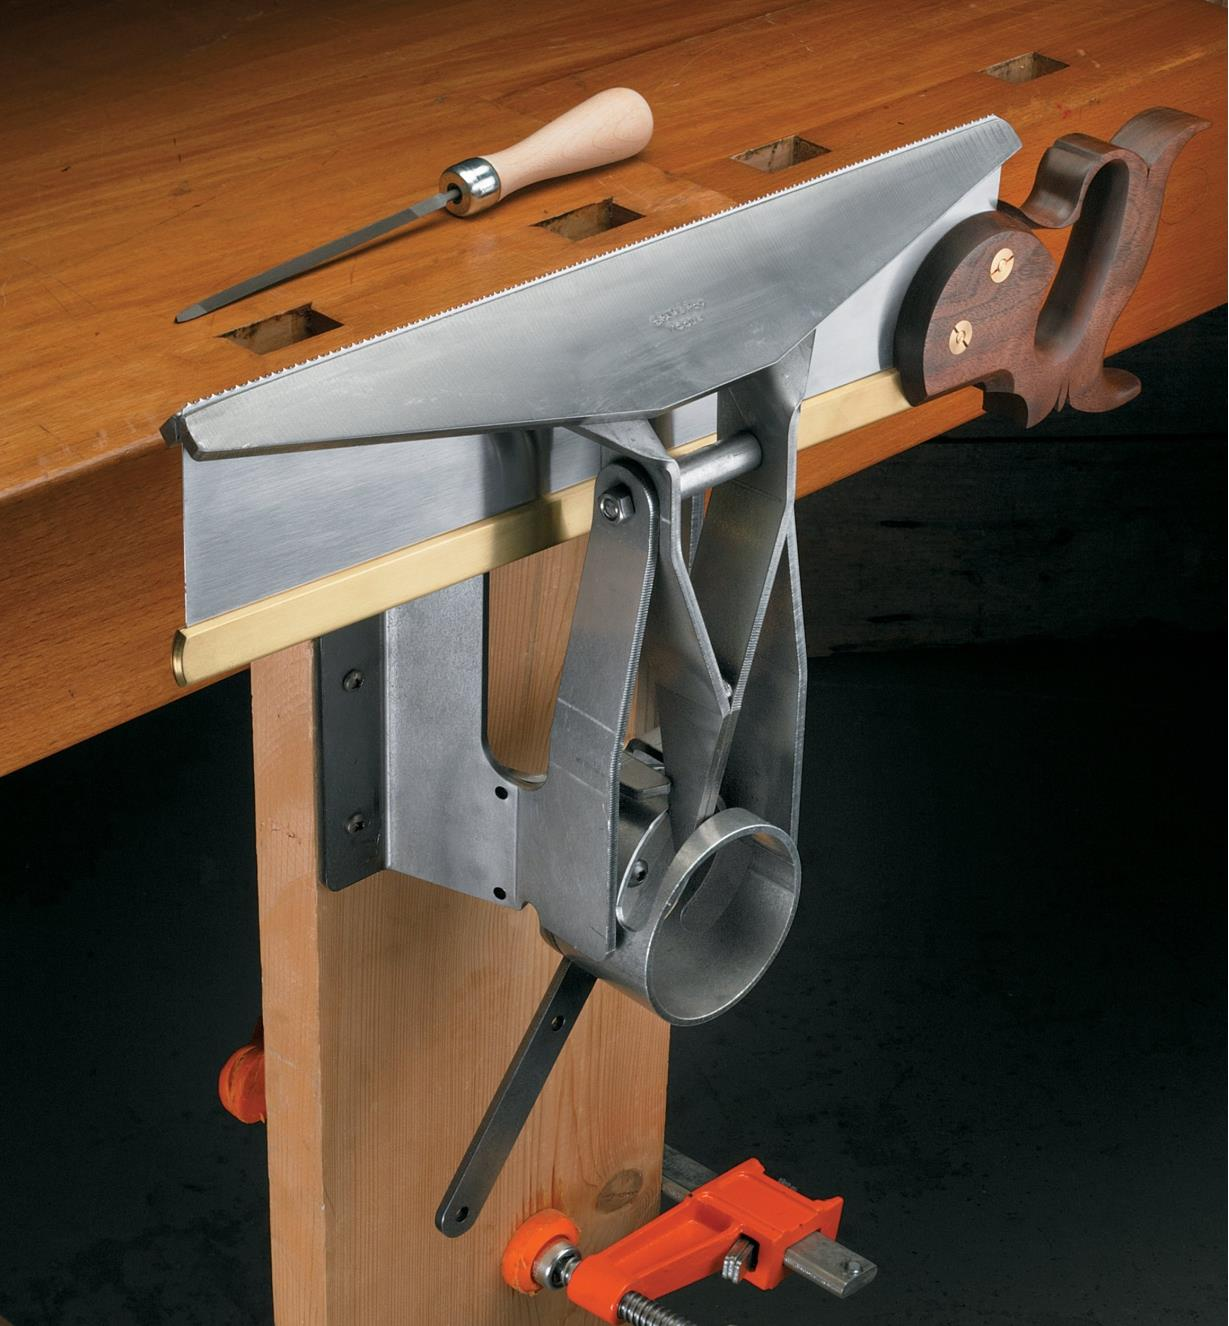 33T0930 - Gramercy Tools Saw Vise